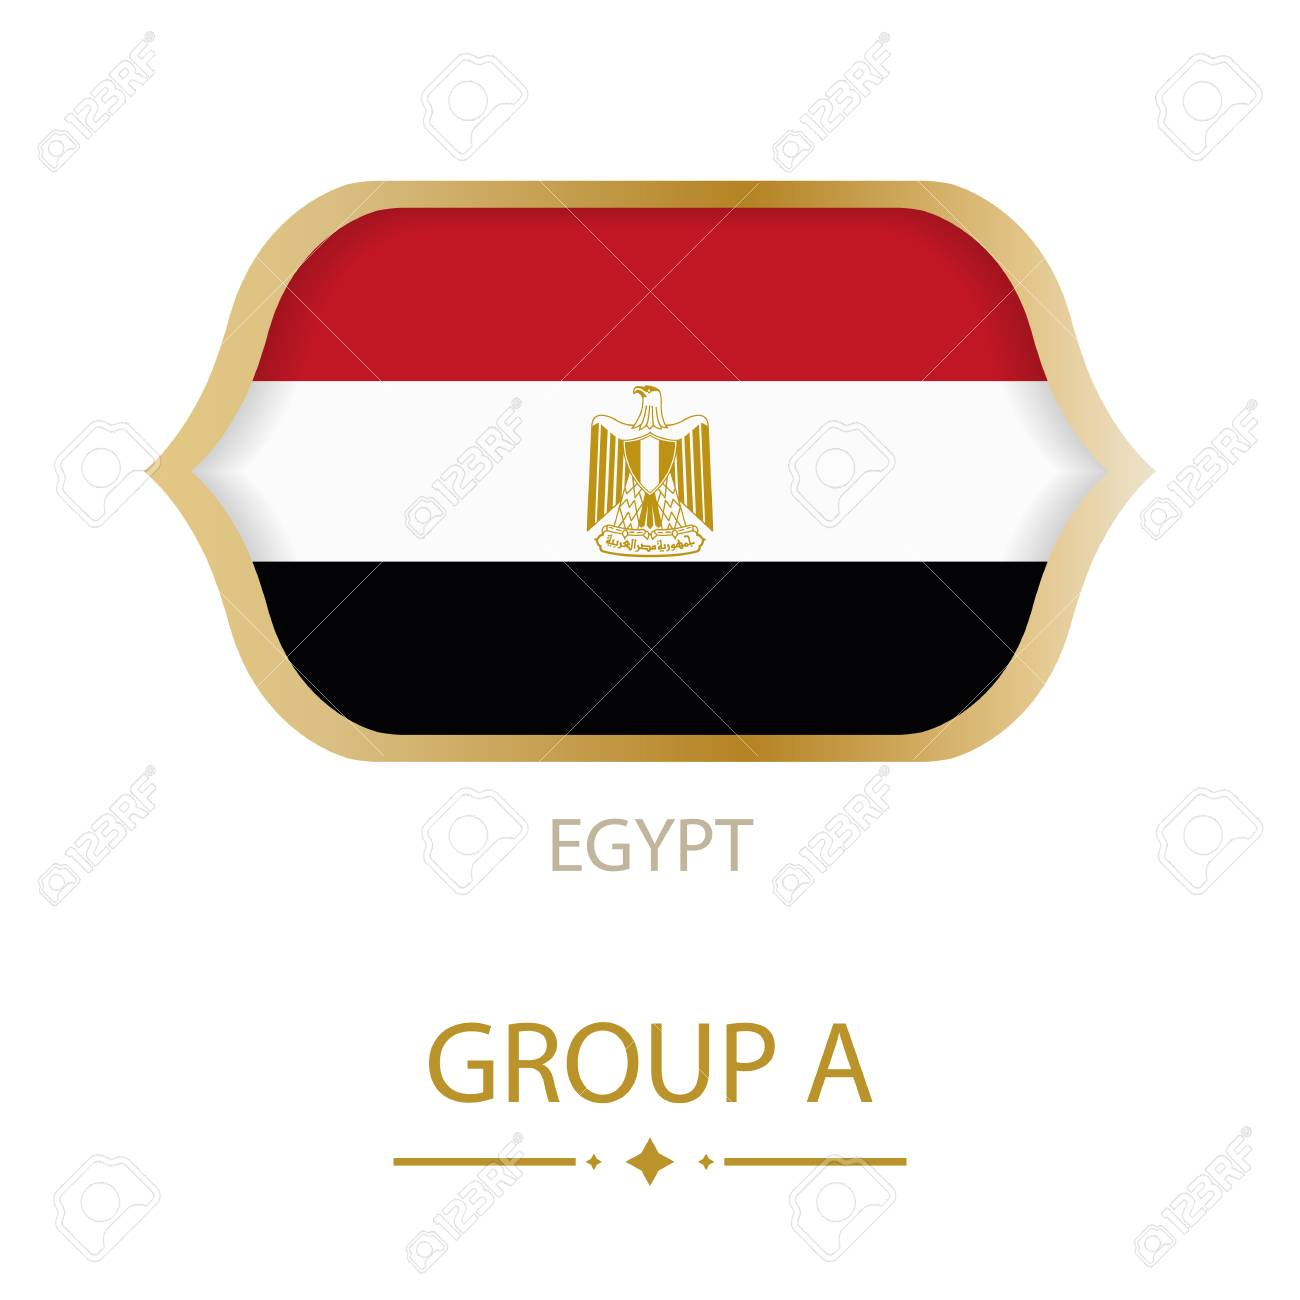 The Flag Of Egypt Is Made In The Style Of The Football World Royalty Free Cliparts Vectors And Stock Illustration Image 93632347